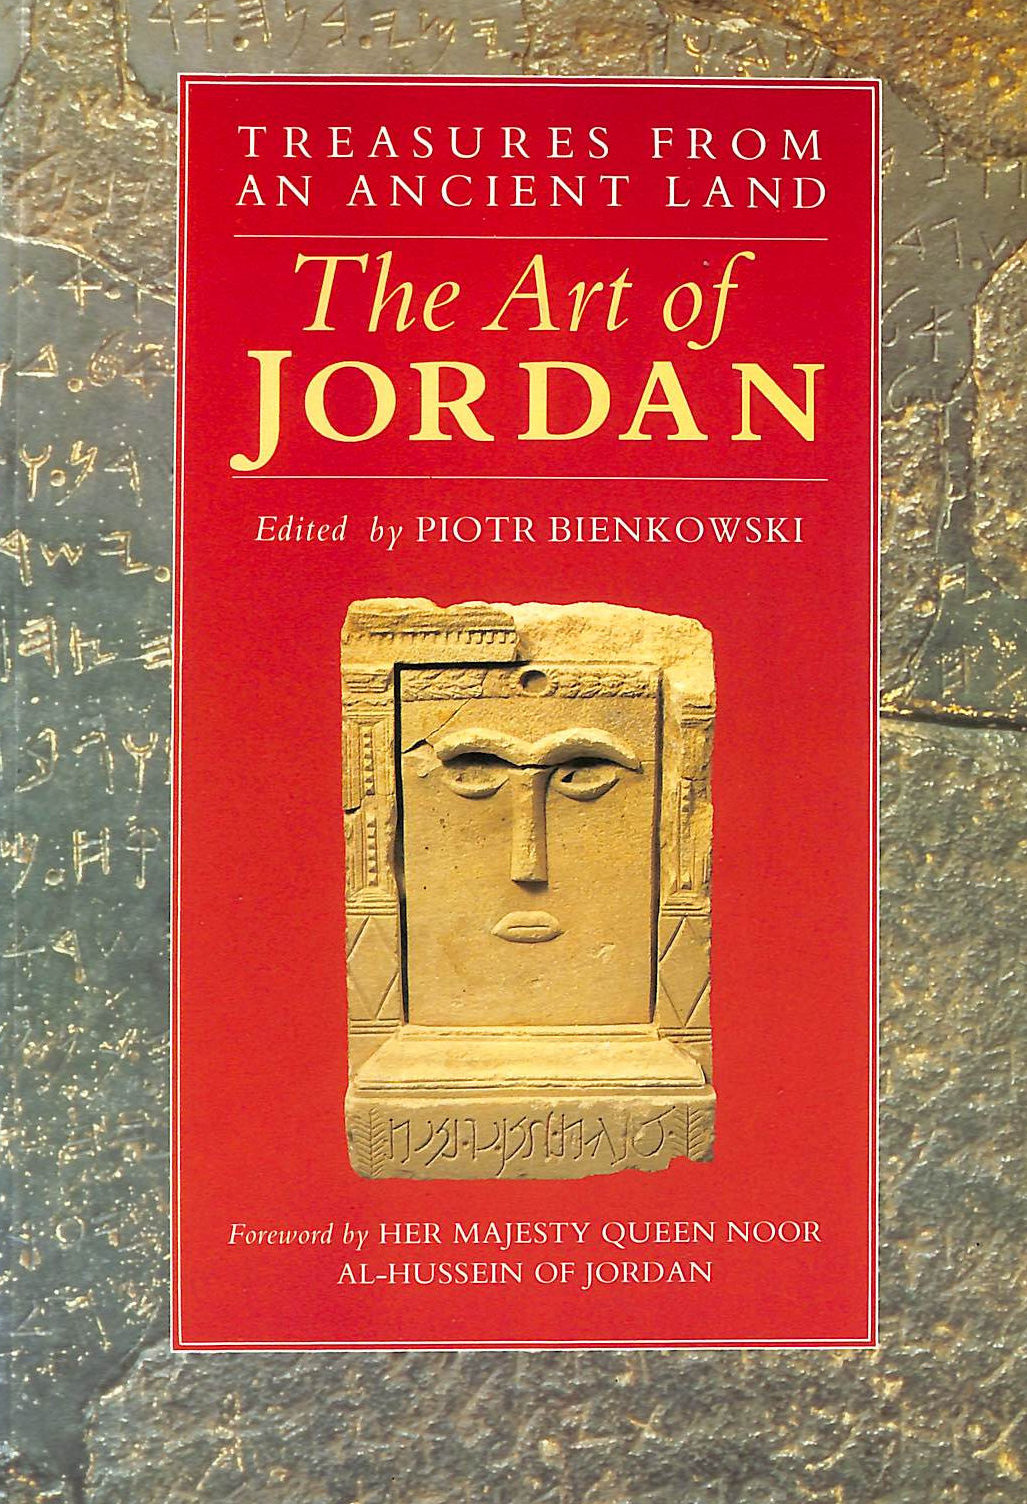 Image for Treasures from an Ancient Land: the Art of Jordan